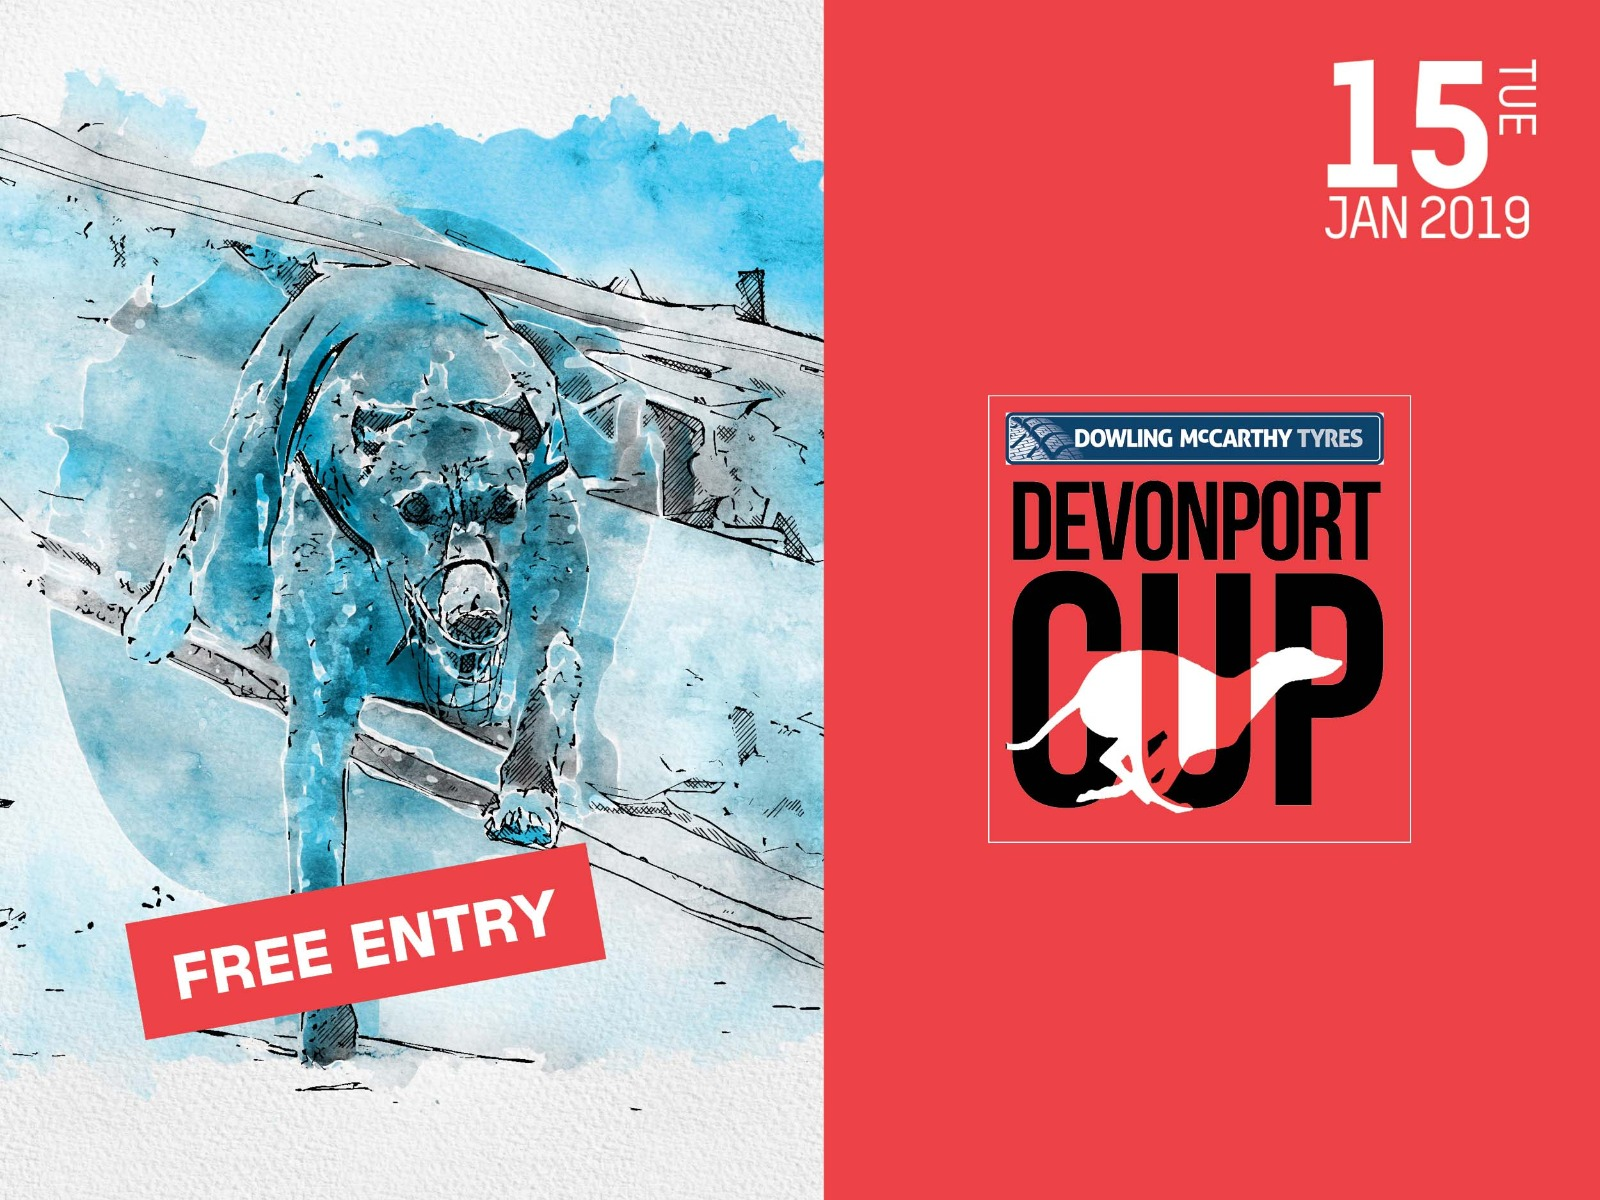 Dowling McCarthy tyres Devonport Greyhound Cup